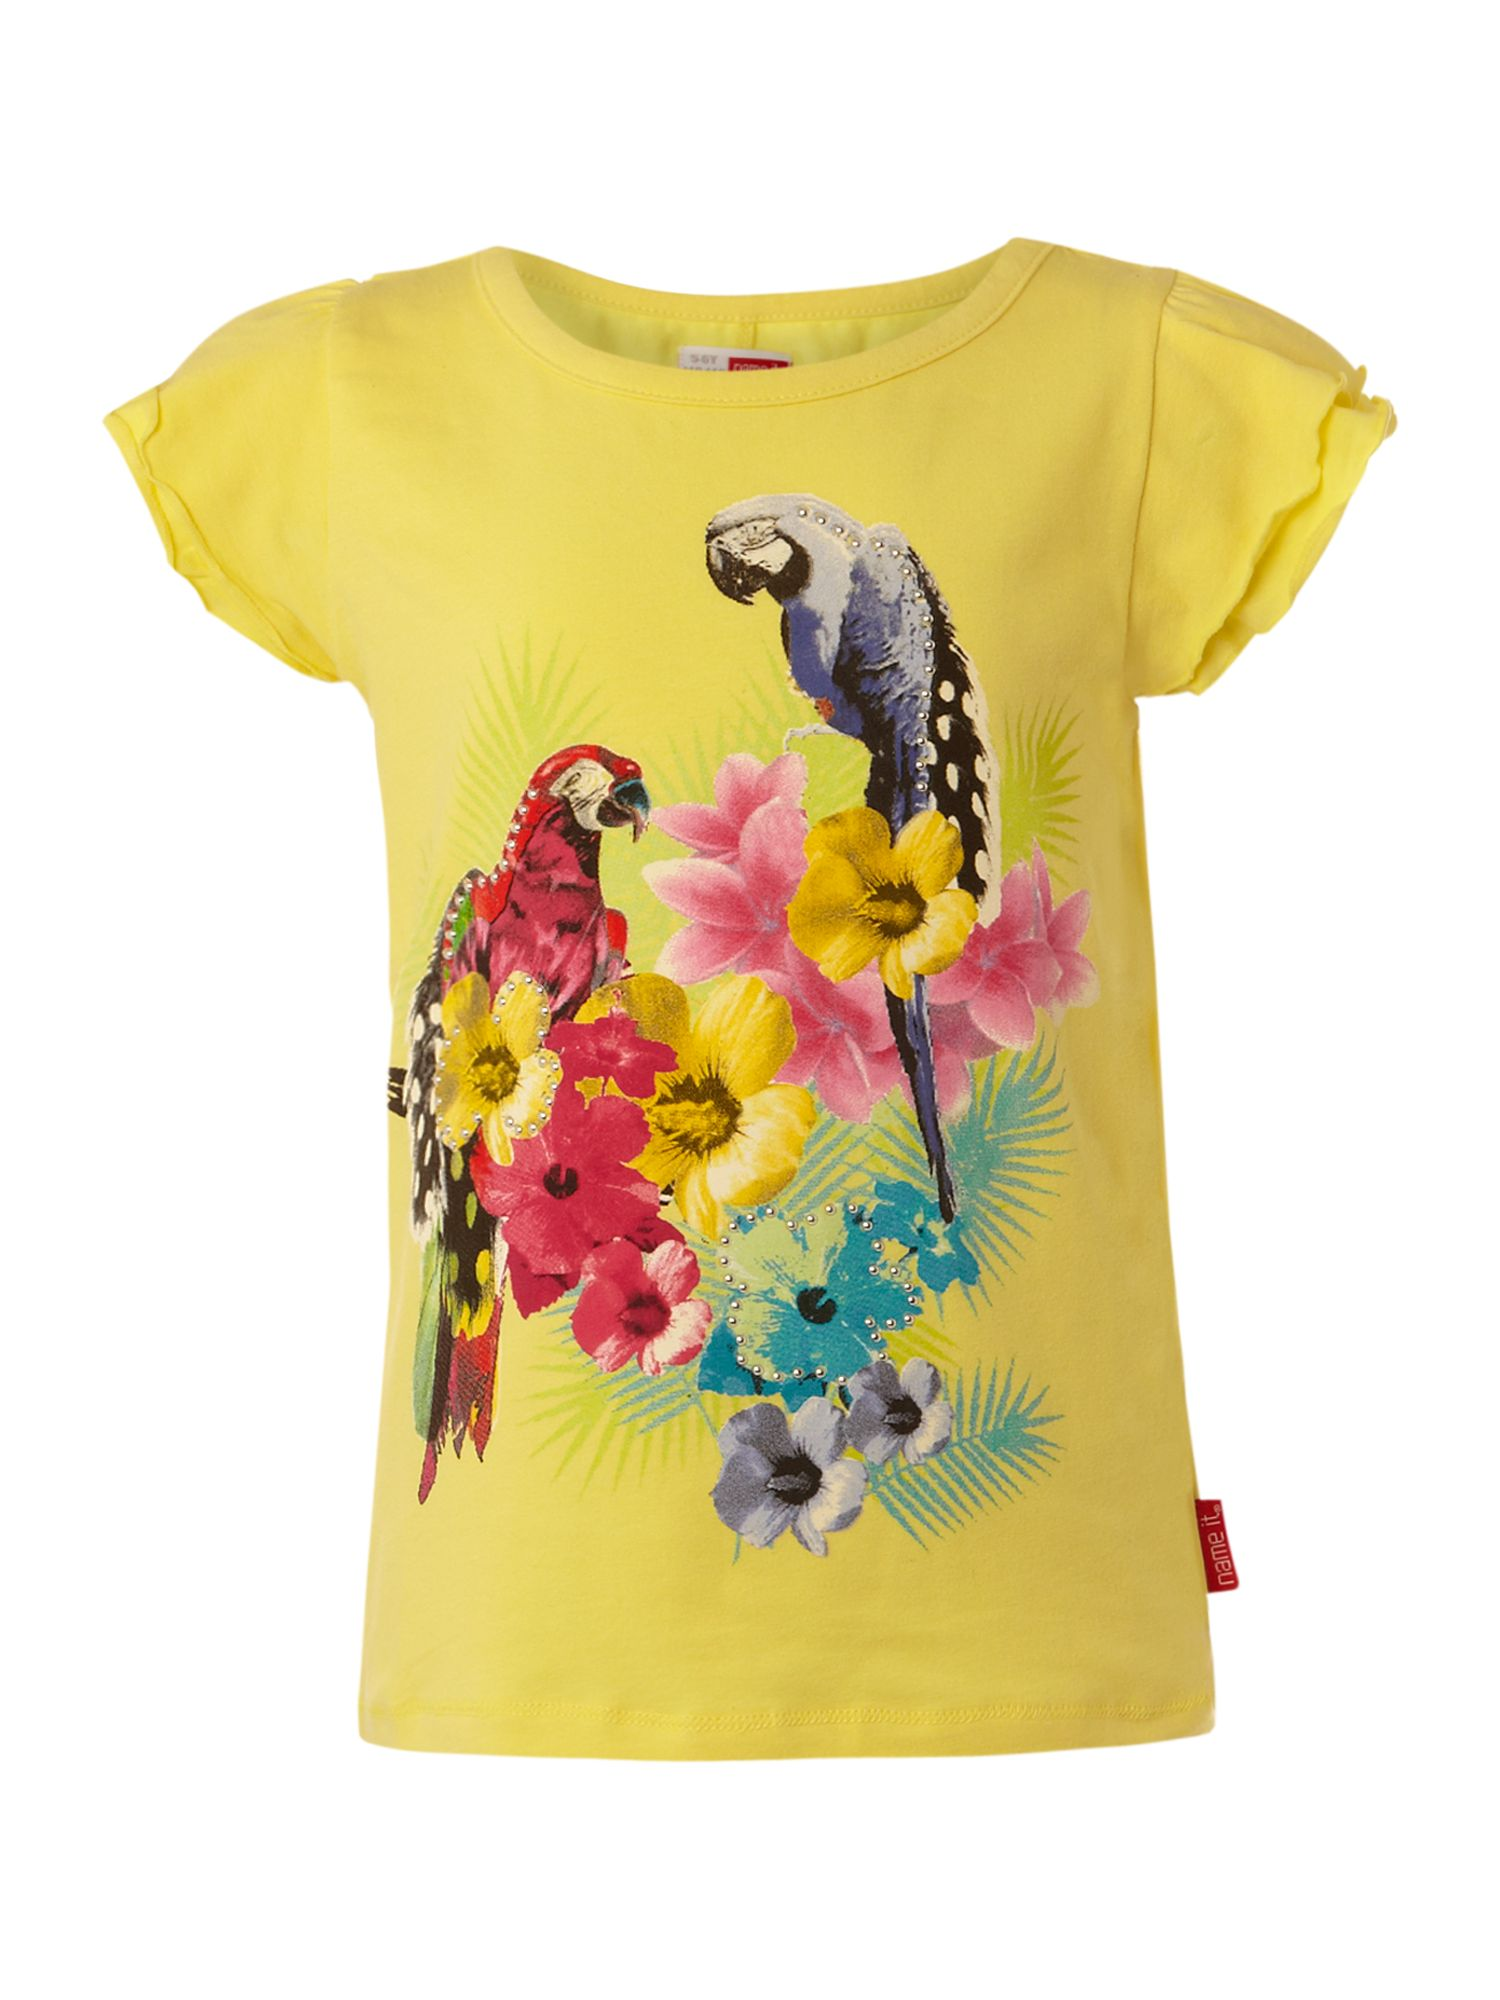 Name it short sleeved parrot printed t shirt white 6 for Name printed t shirts online